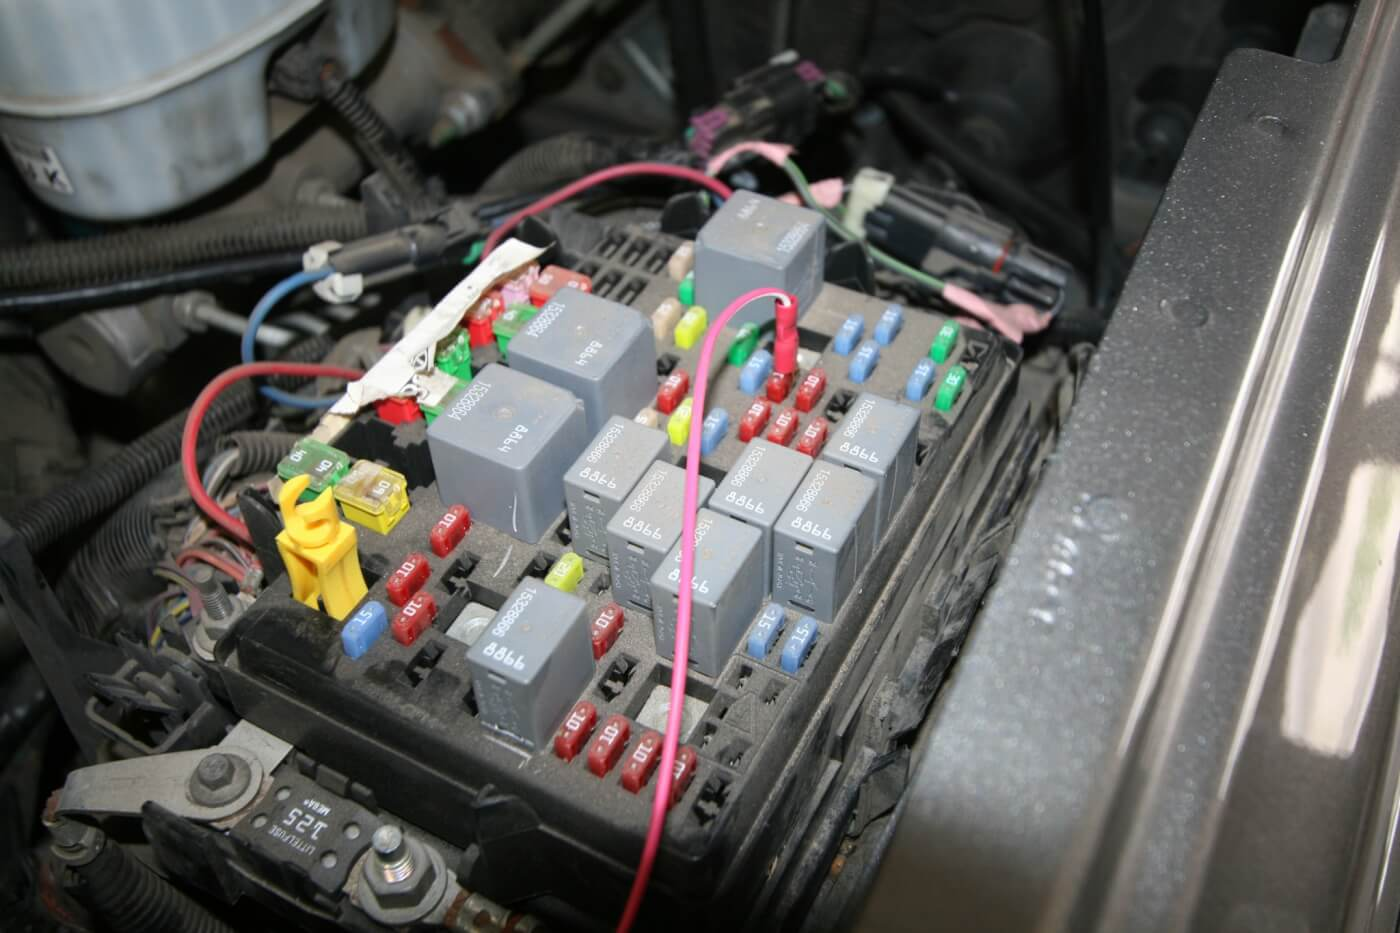 DW 1601 GMBANKS 11 speedbrake installation on a duramax 1974 Chevy Truck Fuse Box Diagram at webbmarketing.co